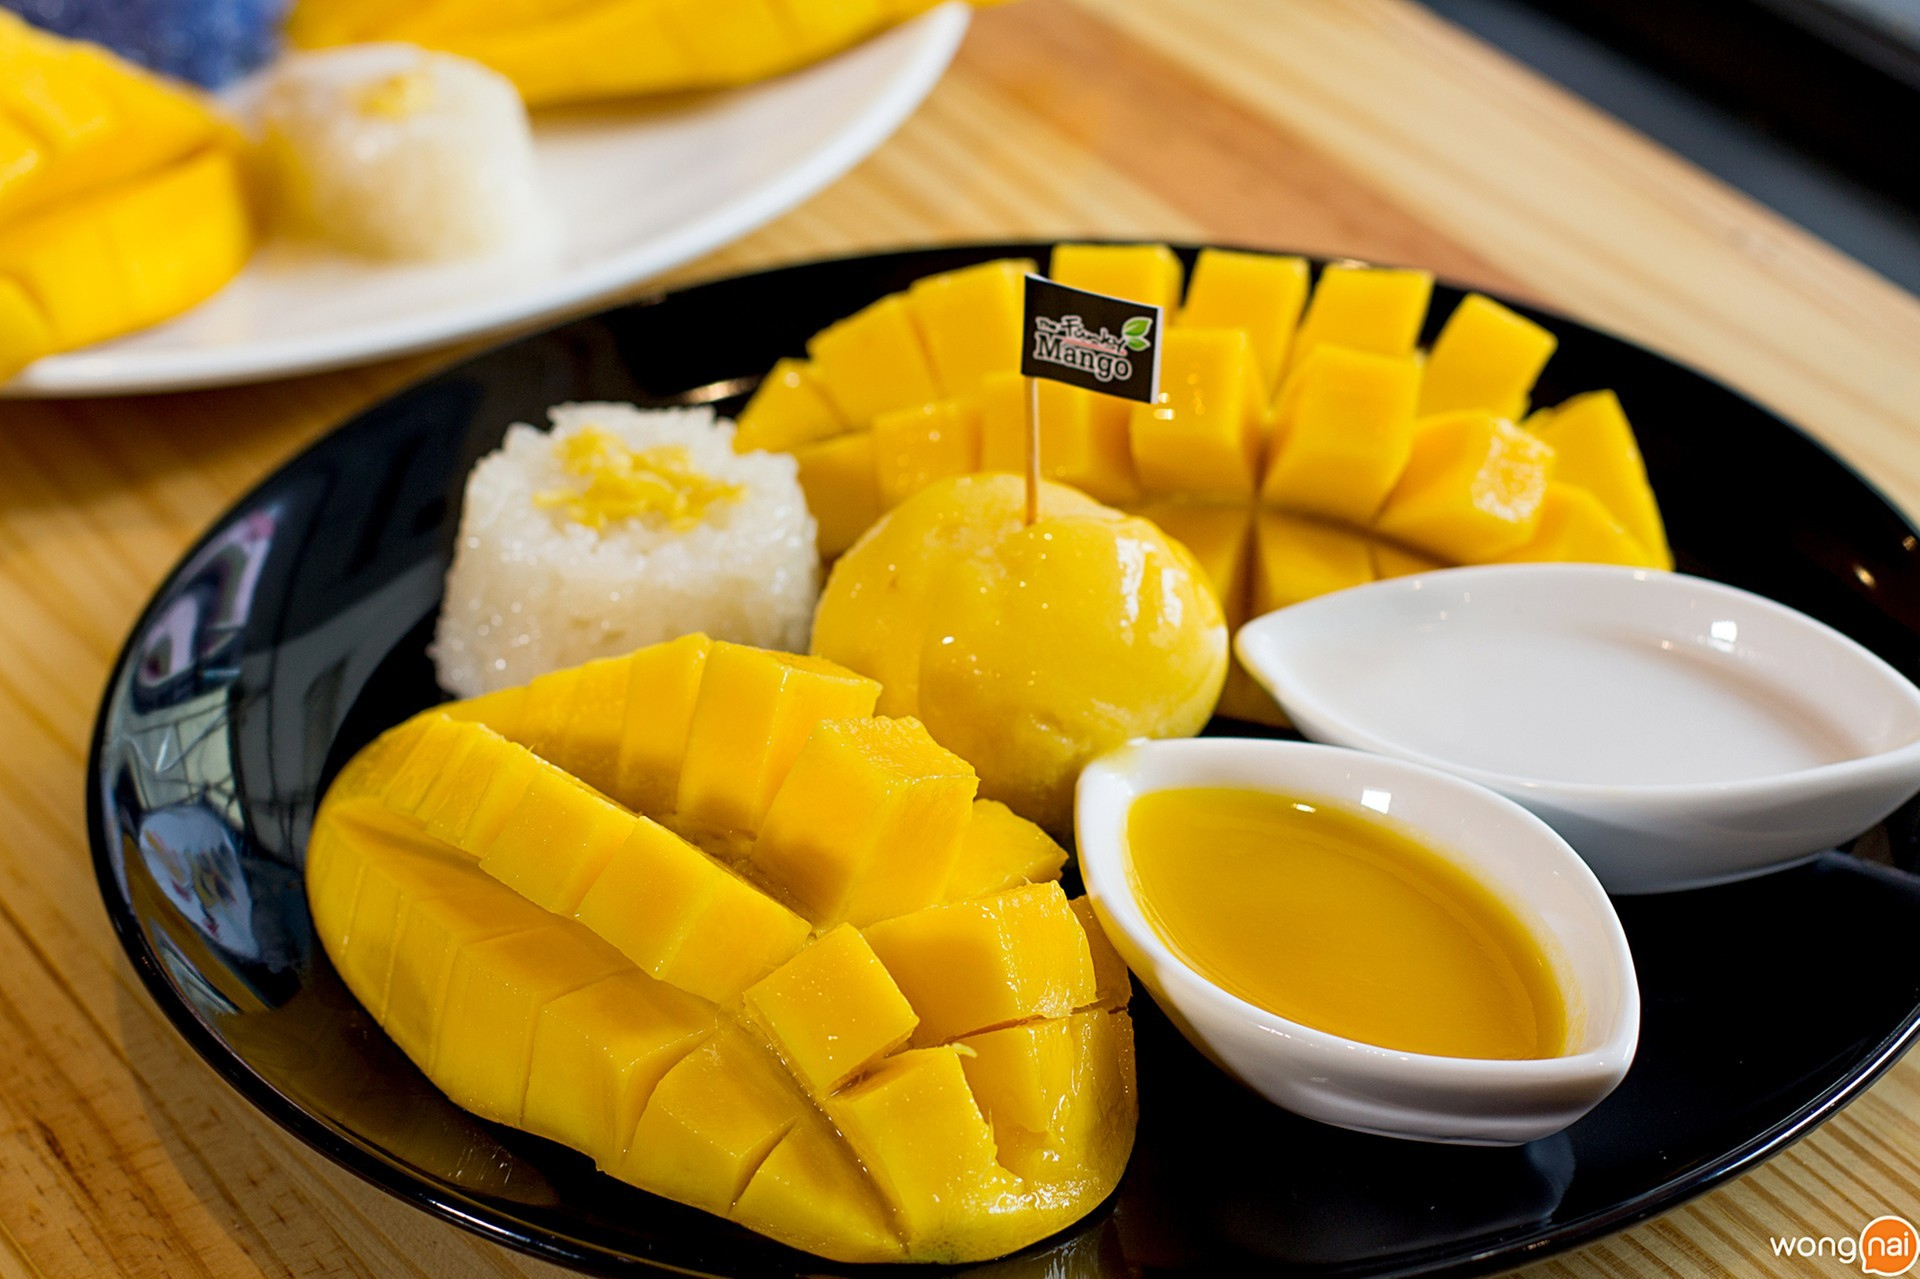 The signature Mango sticky rice ร้าน The Funky Mango หาดใหญ่